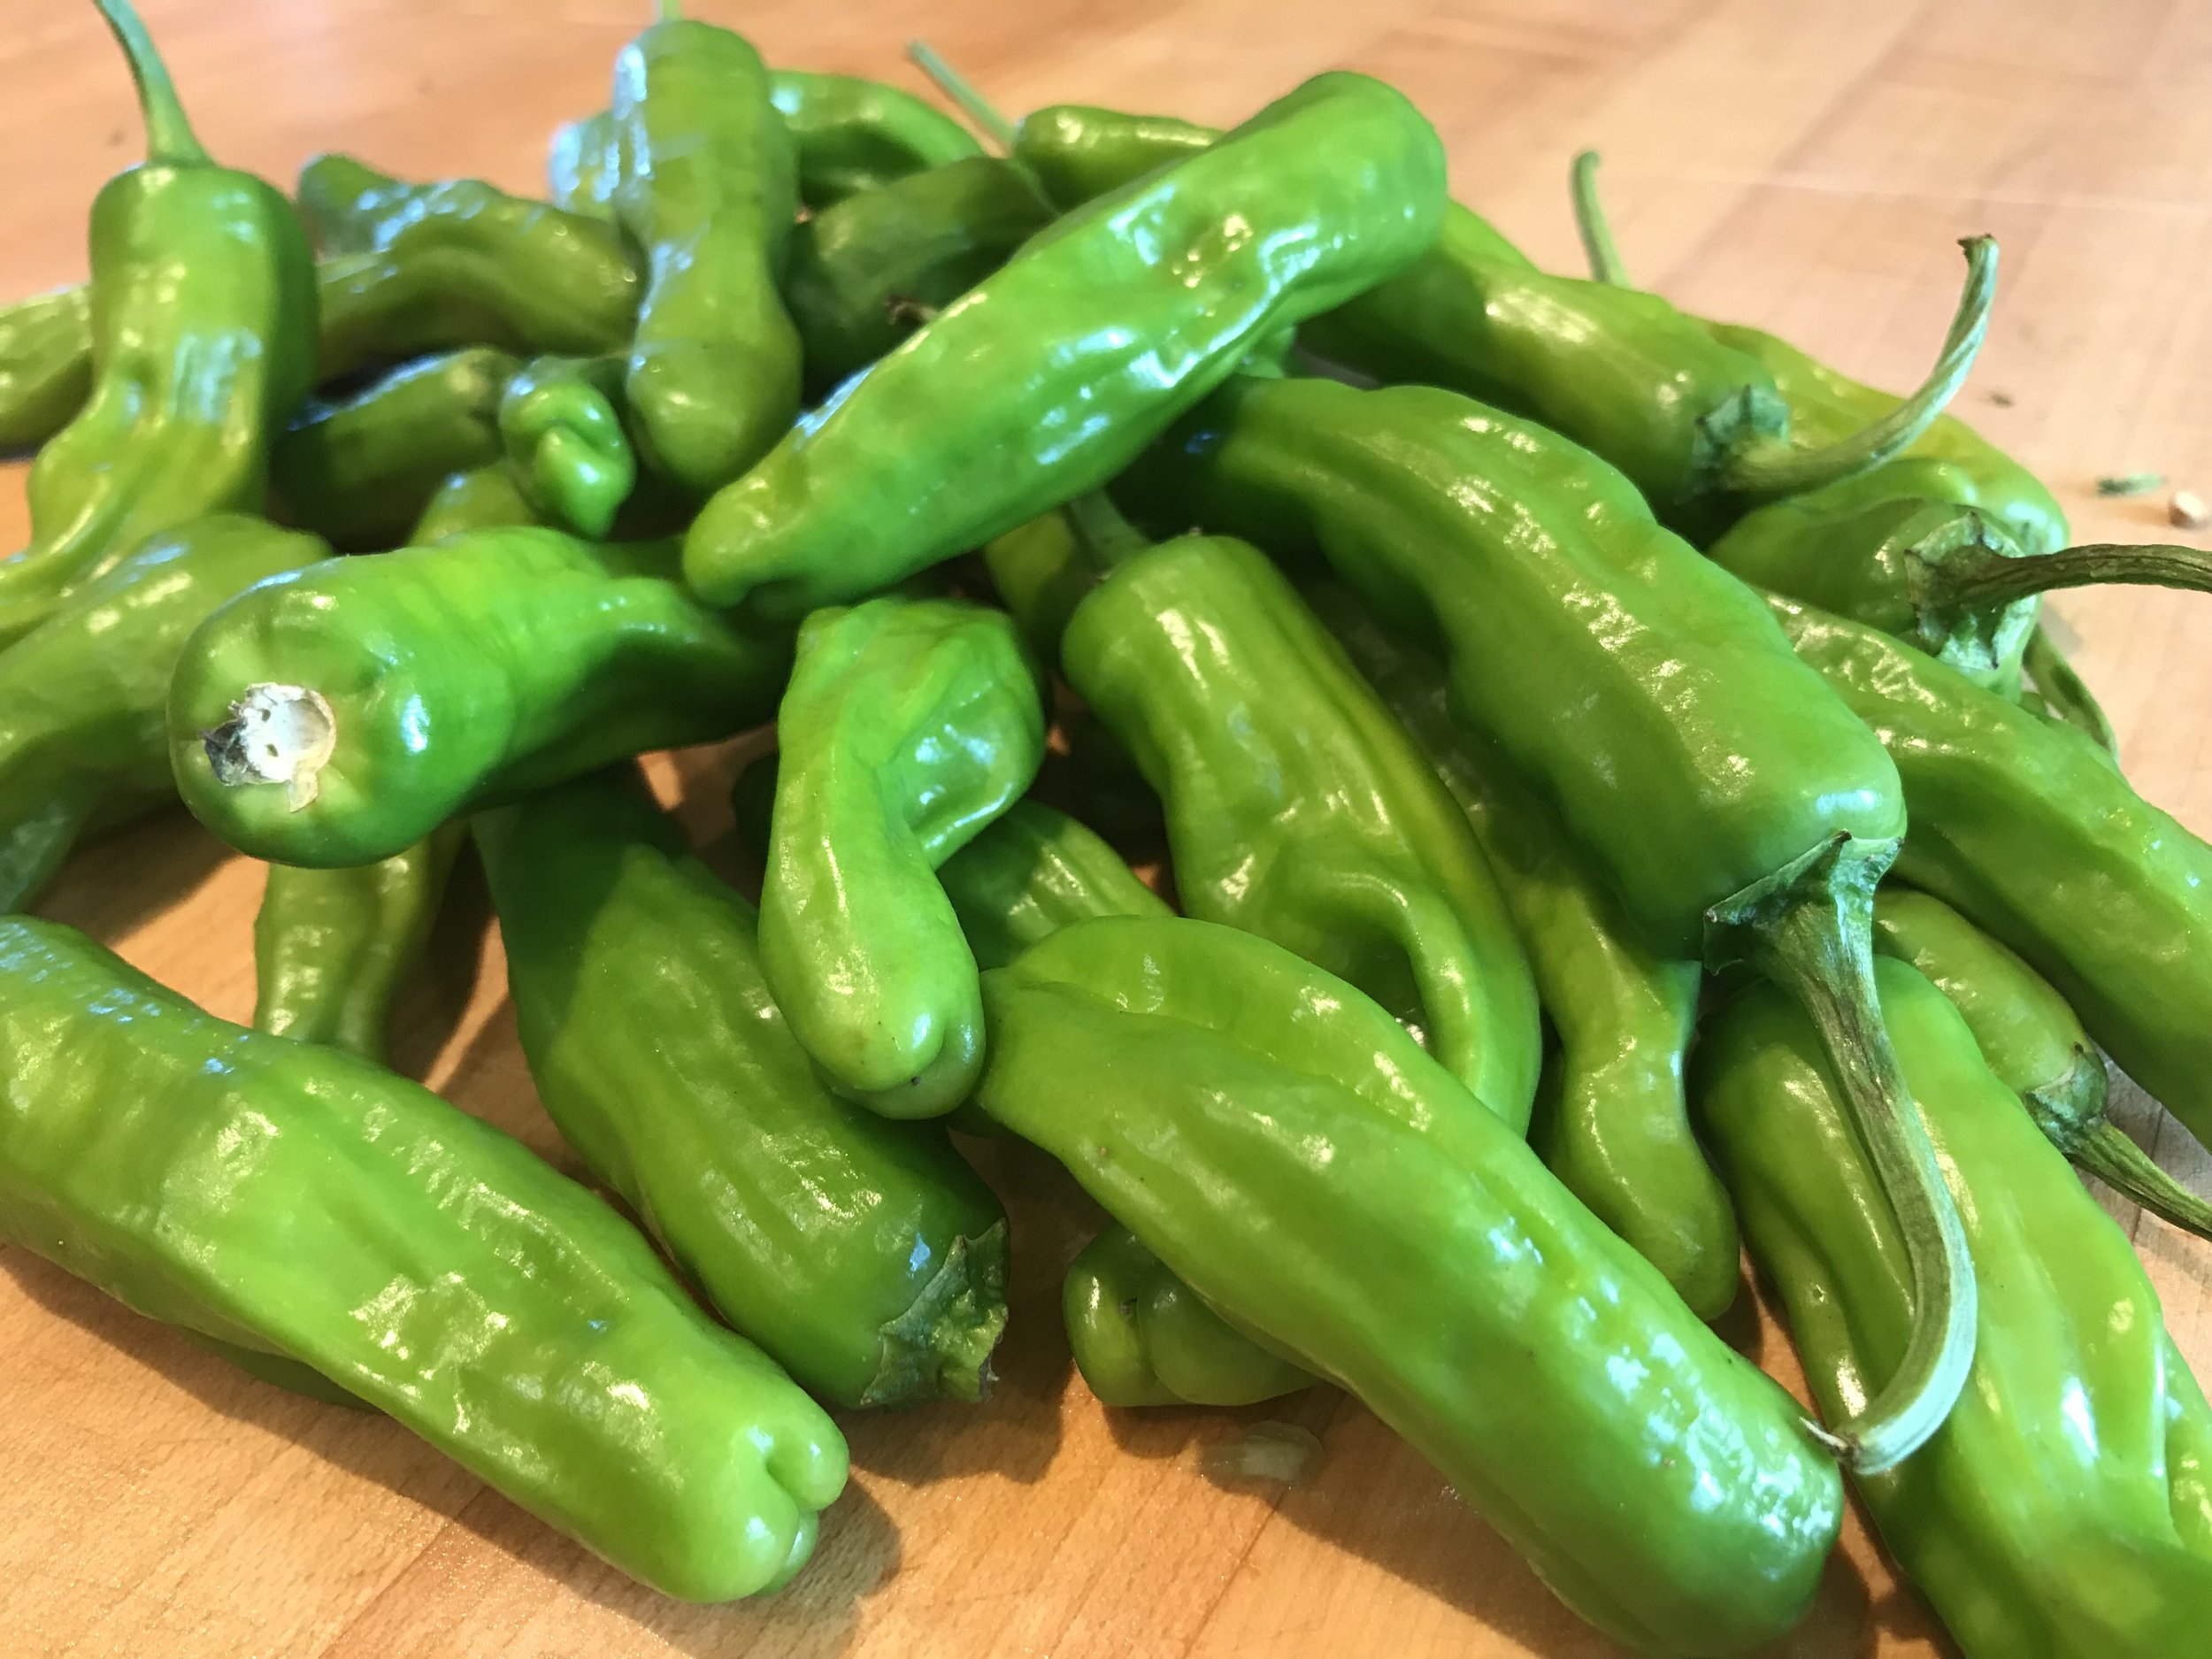 Shishito peppers in the raw state